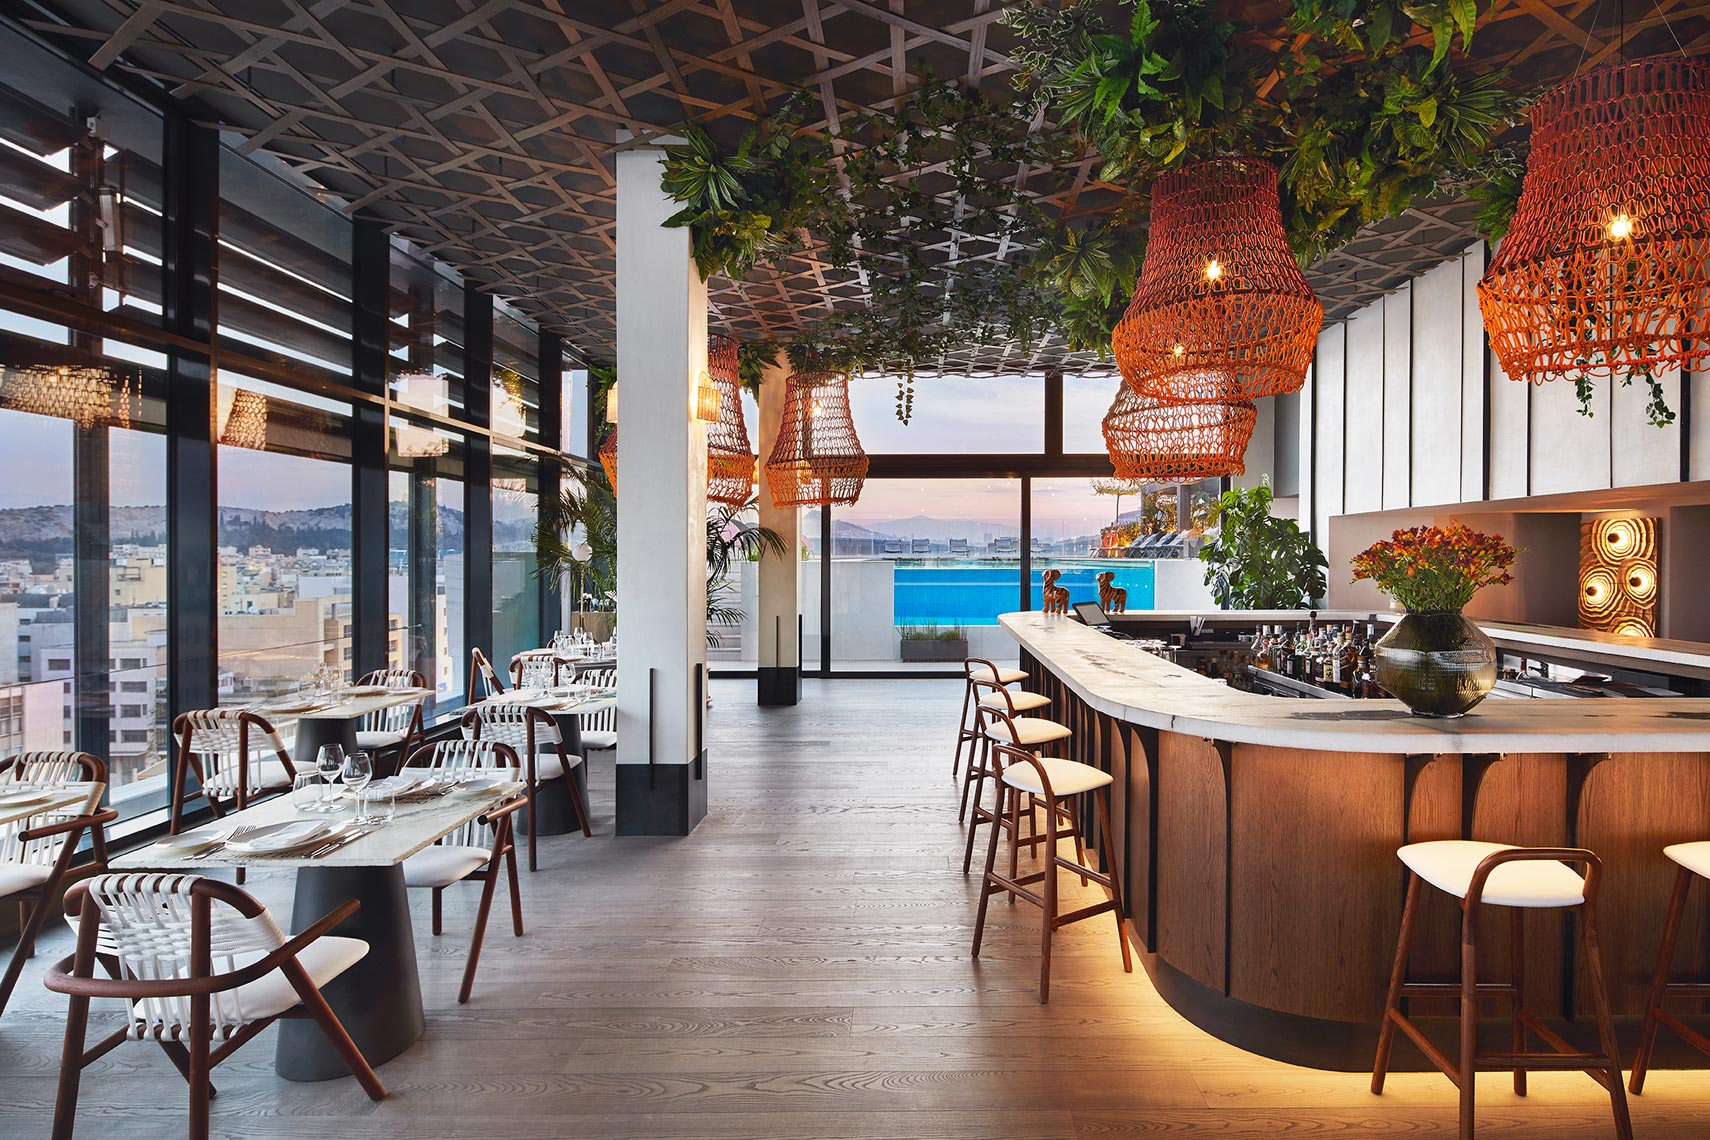 2019_04_02_HYATT_ATHENS_Restaurant_Bar_S02_100_EXTERIOR-copy